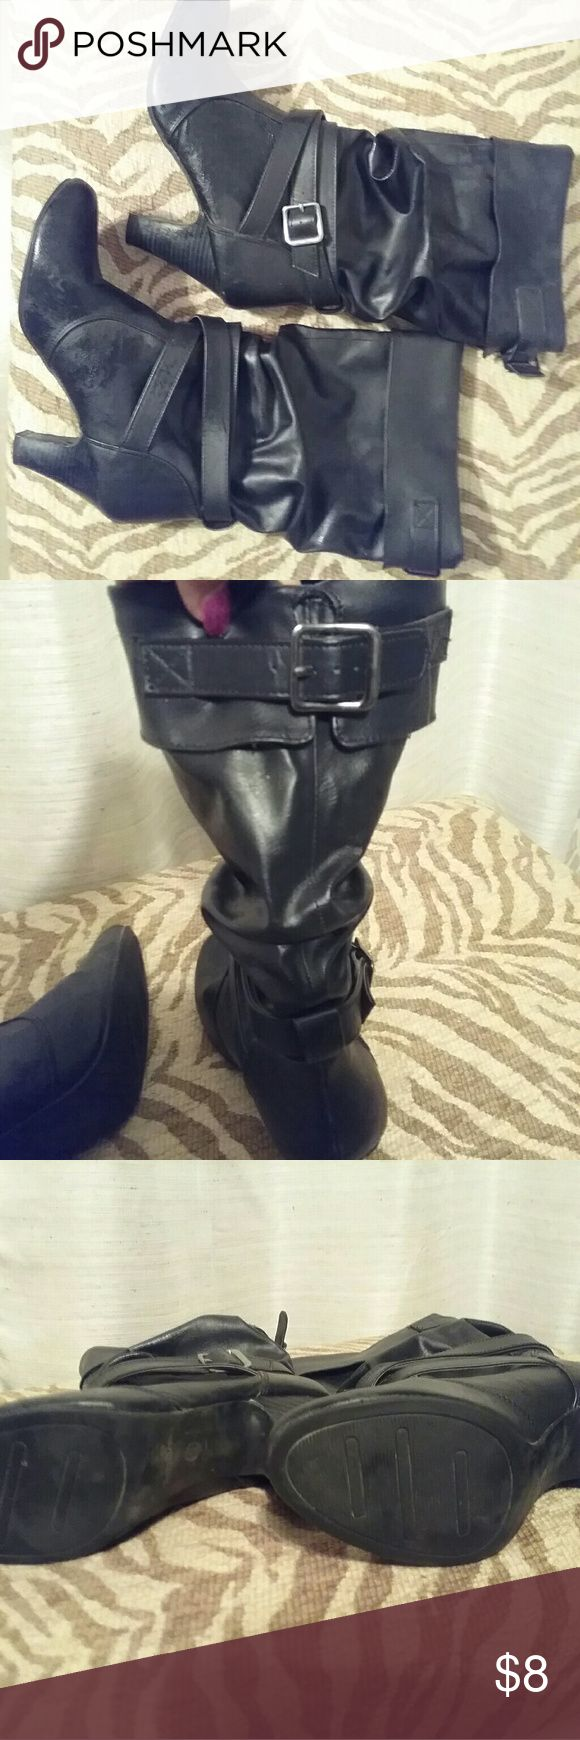 Womens mid calf boots Cute mid calf boots in good condition.  Worn 4 or 5 times Shoes Heeled Boots